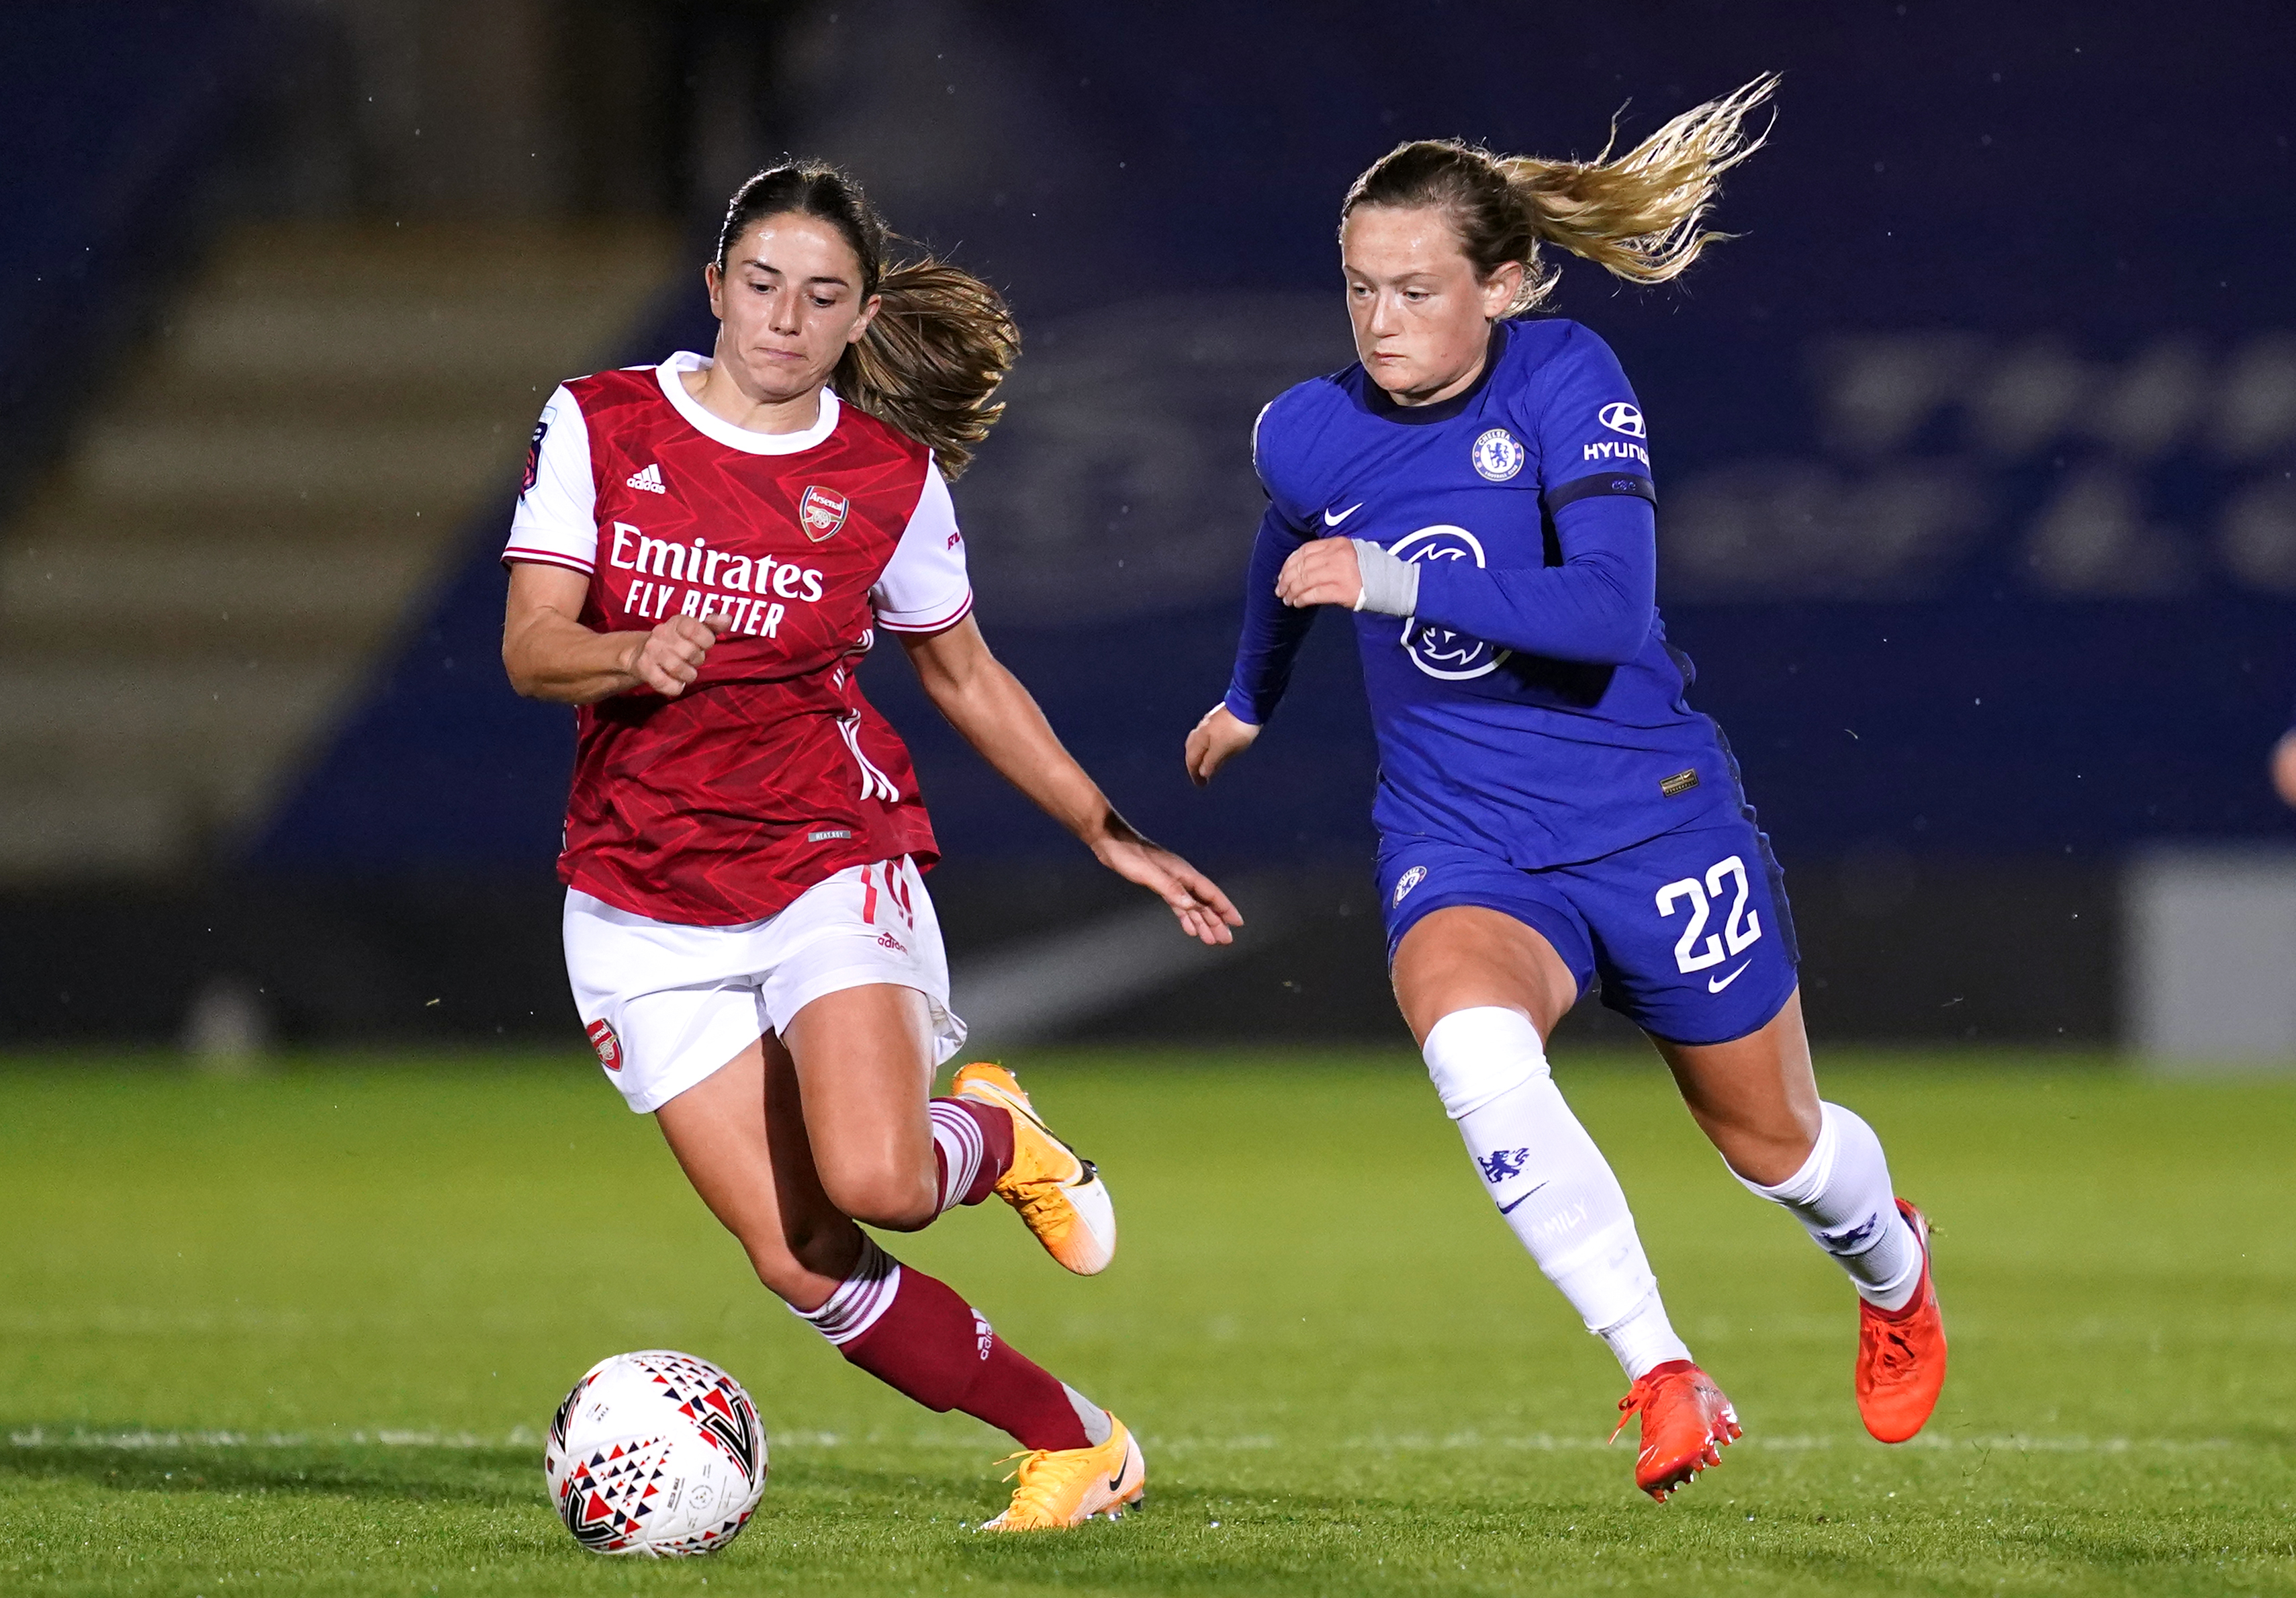 Chelsea v Arsenal - FA Continental League Cup - Group Stage One - Kingsmeadow